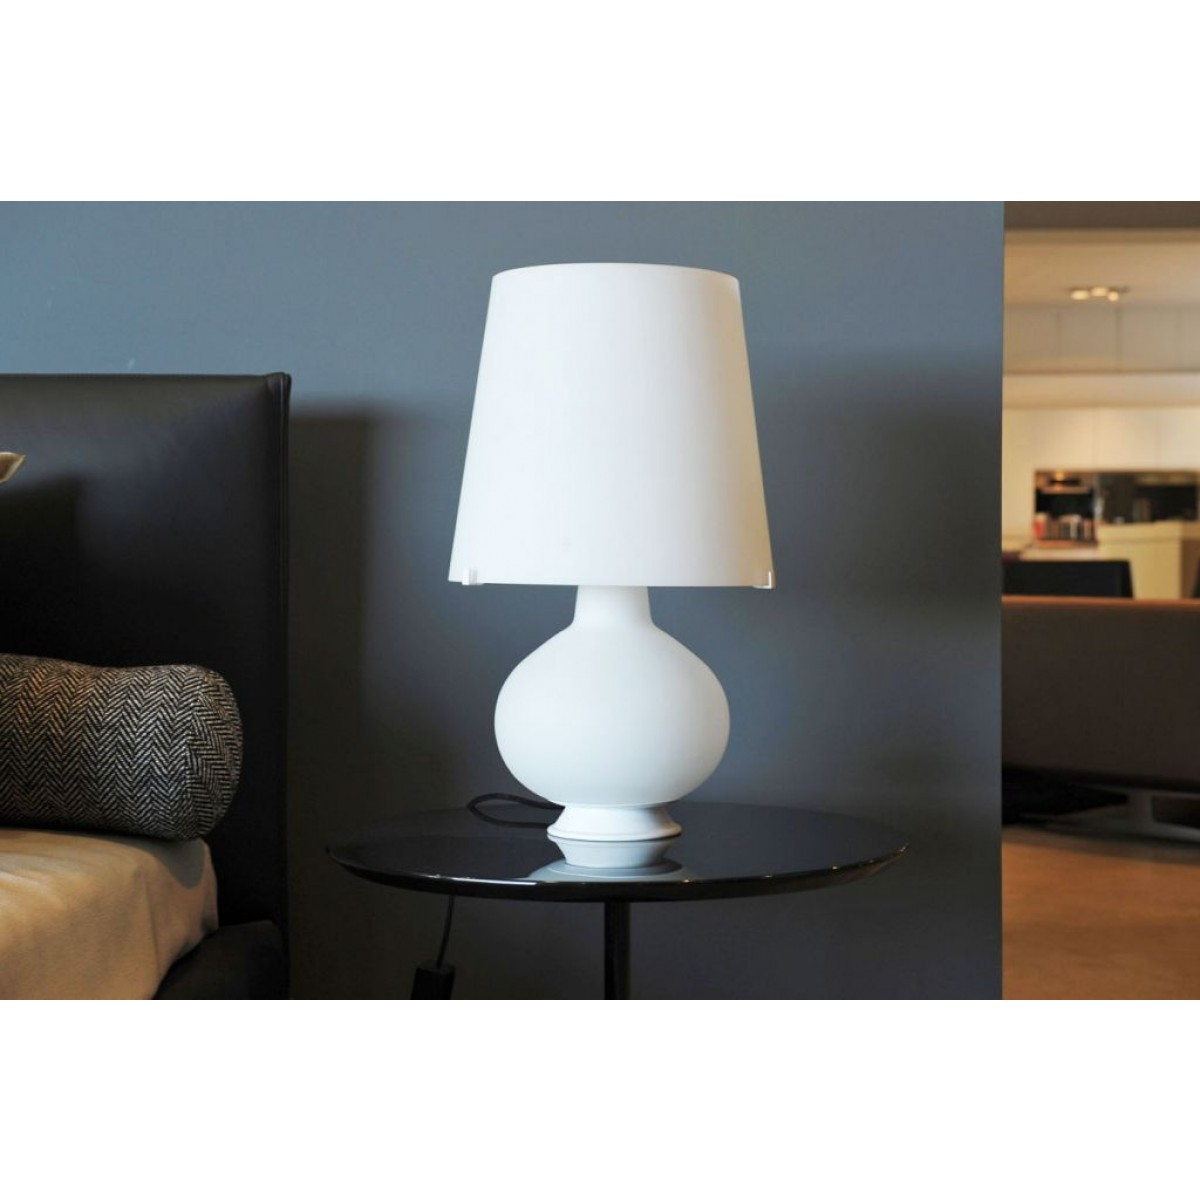 Big-sofa Fontana Fontanaarte Fontana Big Table Lamp Outlet Desout